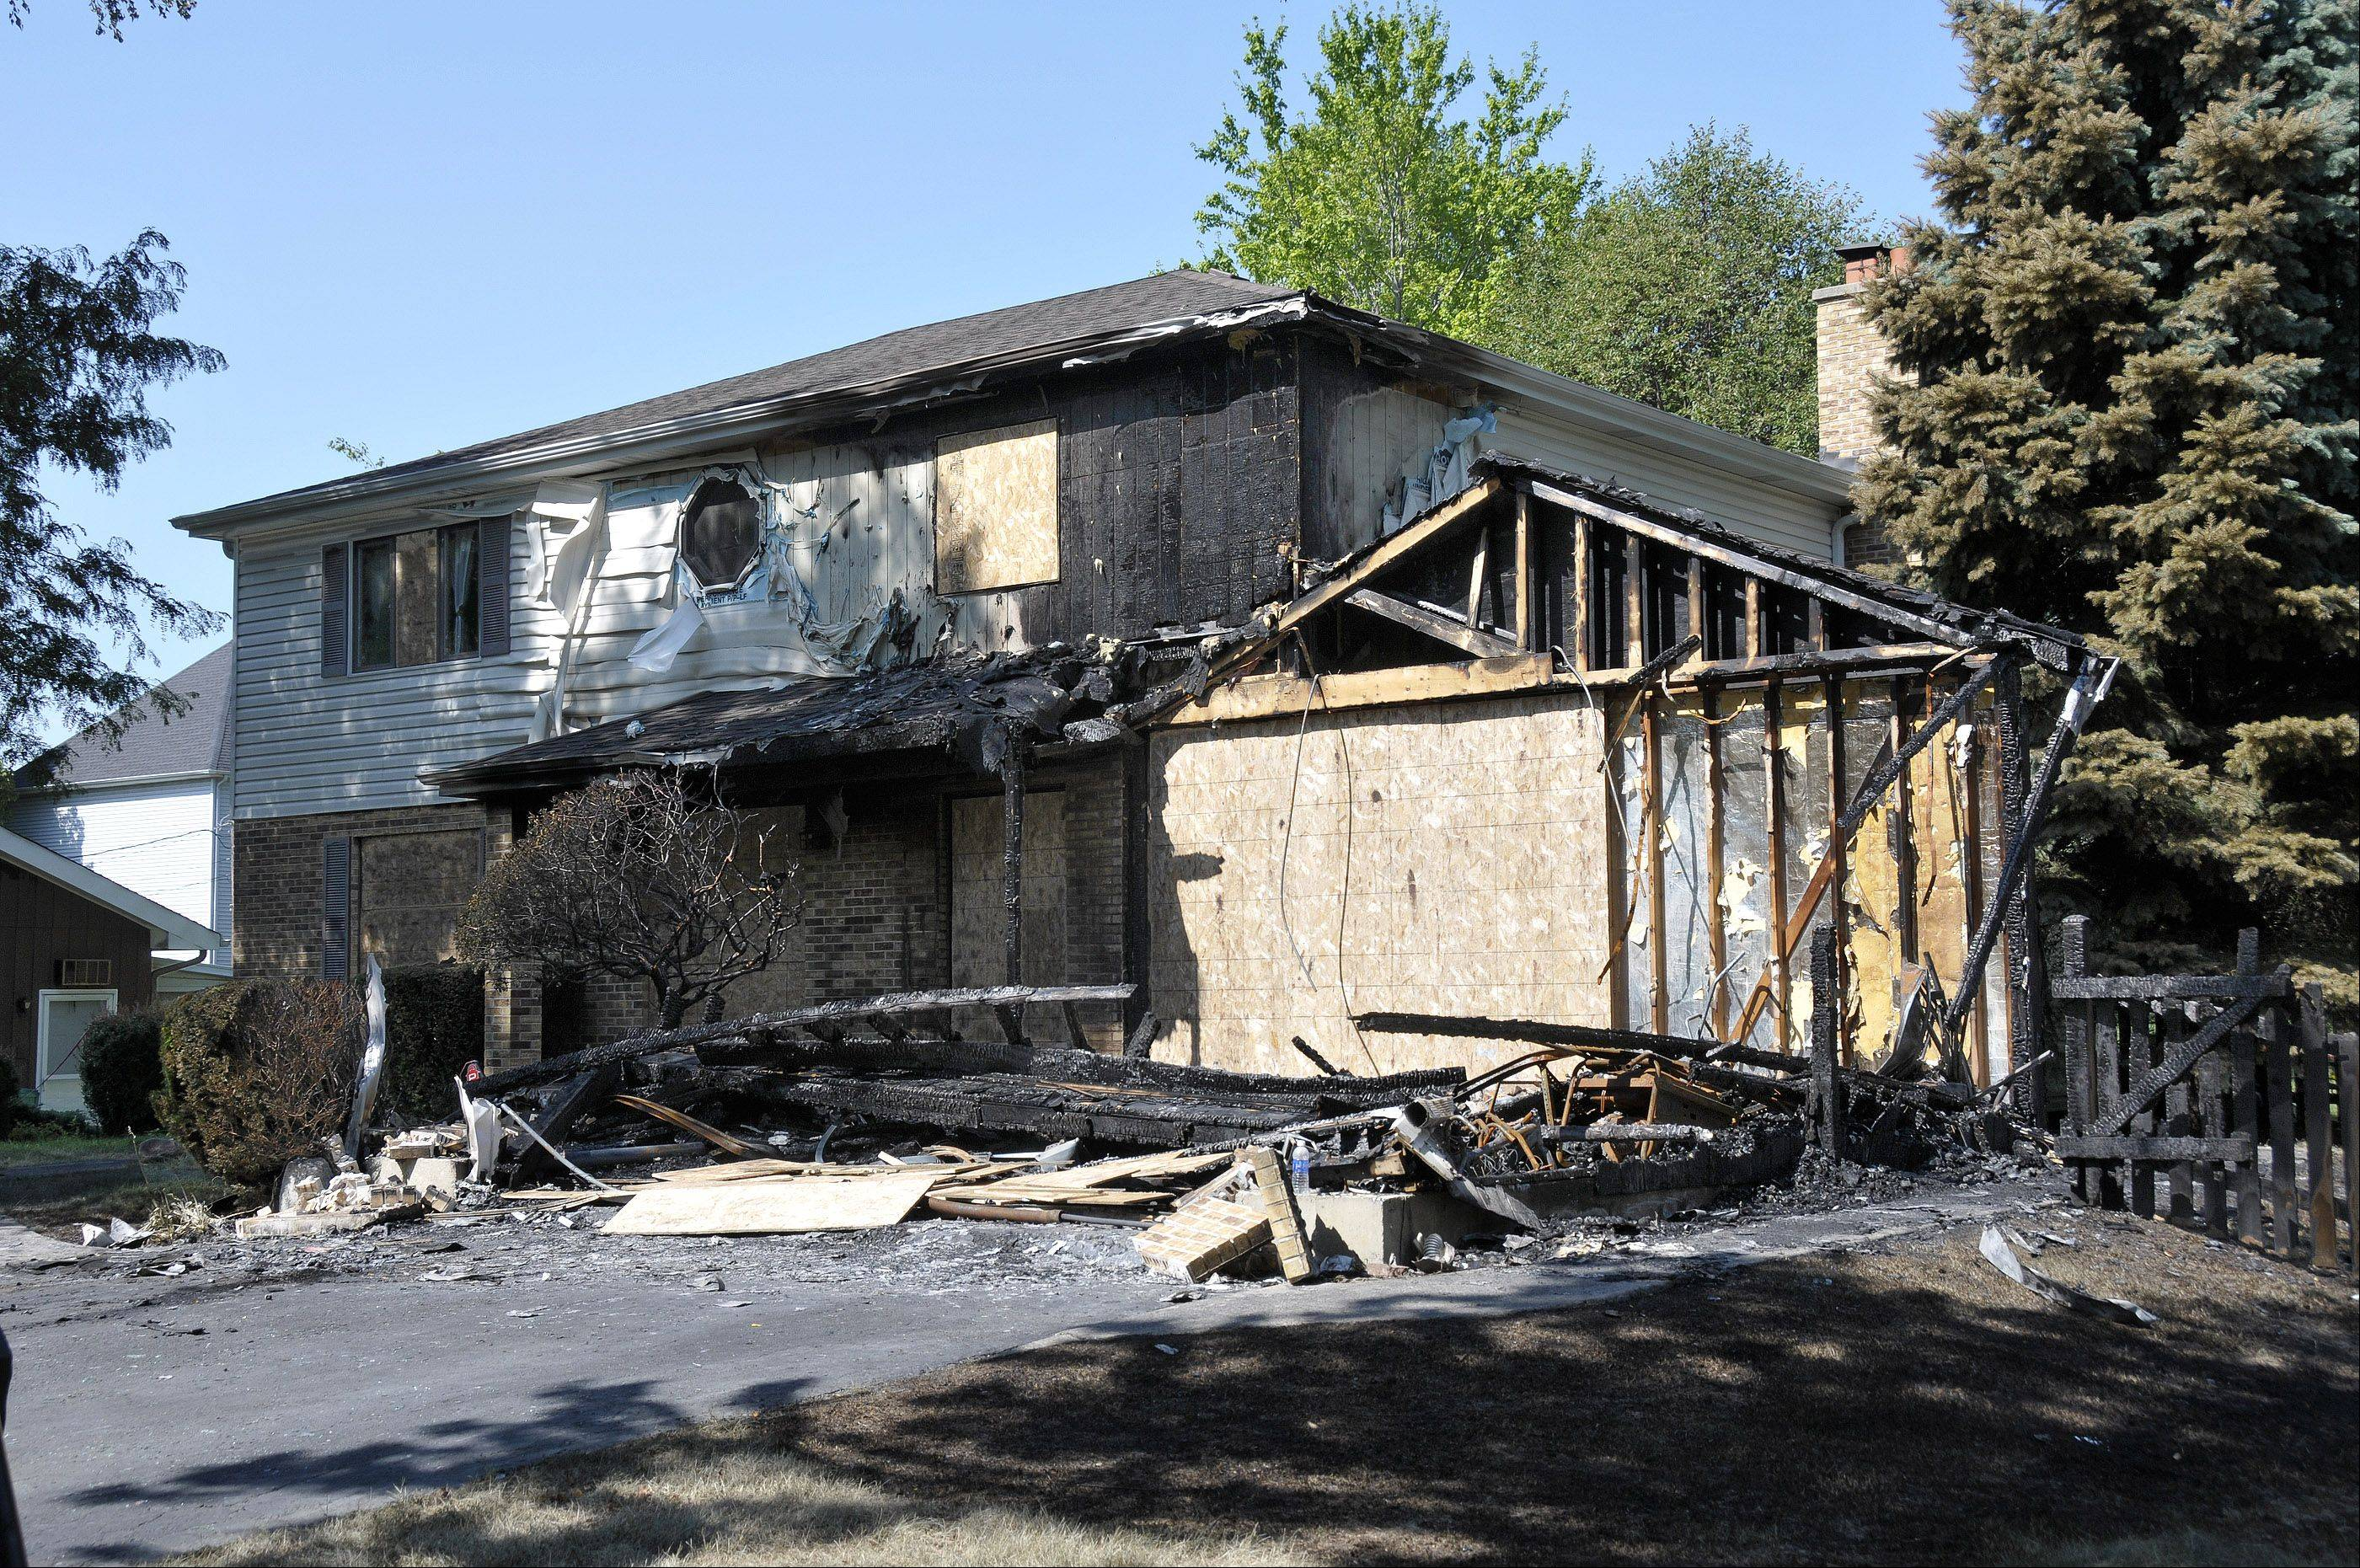 Twenty four-year-old Paula Morgan was found dead after an early morning Sunday fire at this home on the 1000 block of South Ahrens Avenue in Lombard.